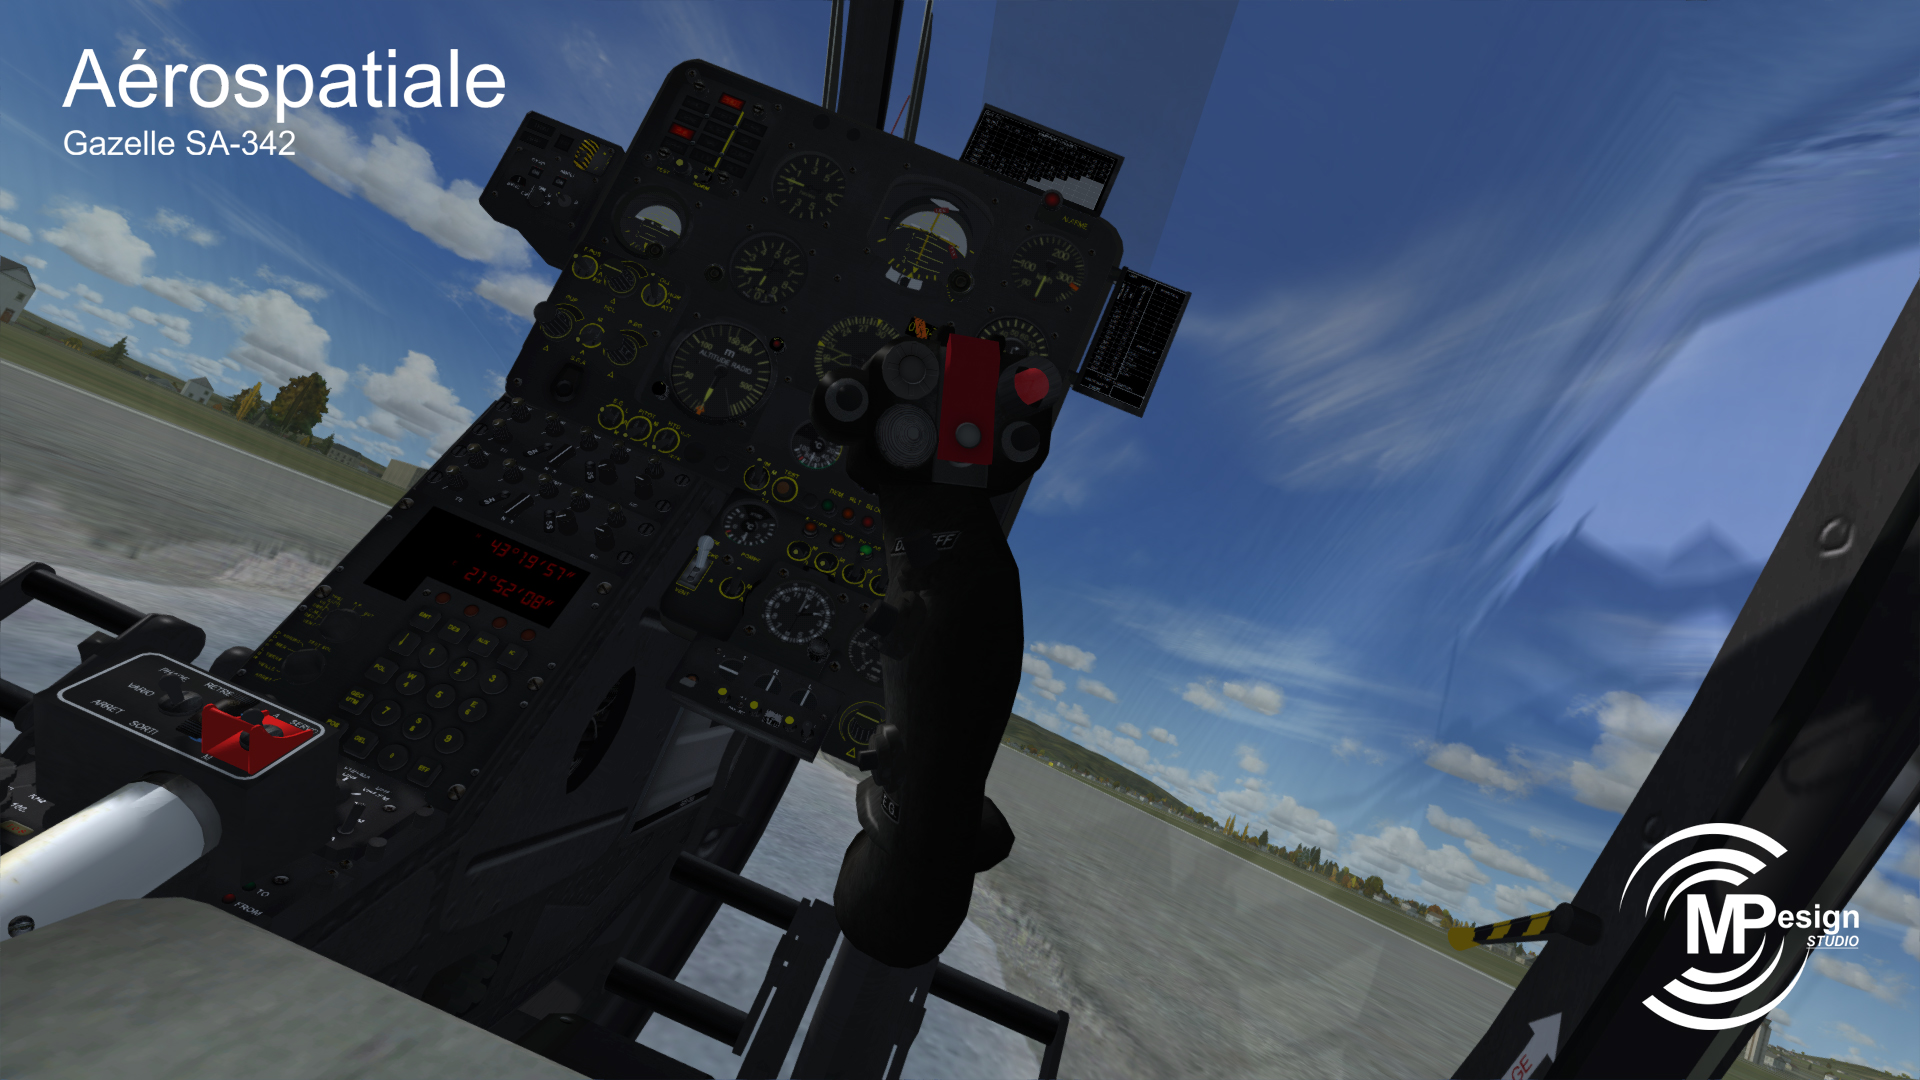 MP DESIGN STUDIO - AEROSPATIALE GAZELLE SA342 FSX P3D